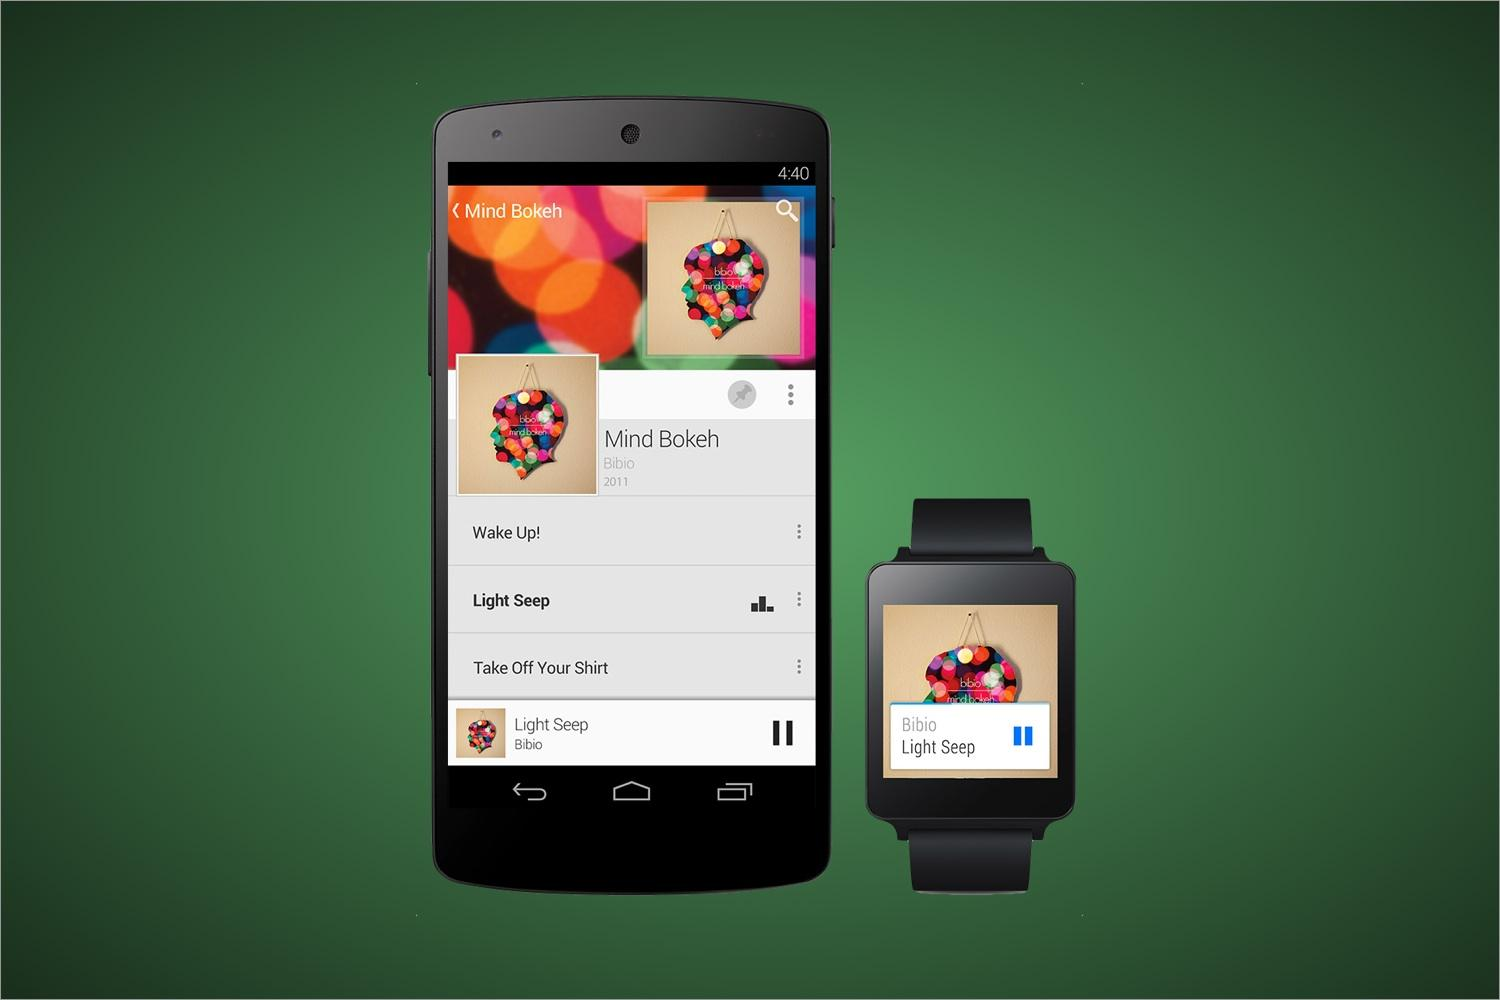 Android 5.0 and Android Wear: The Combo to Defeat iOS